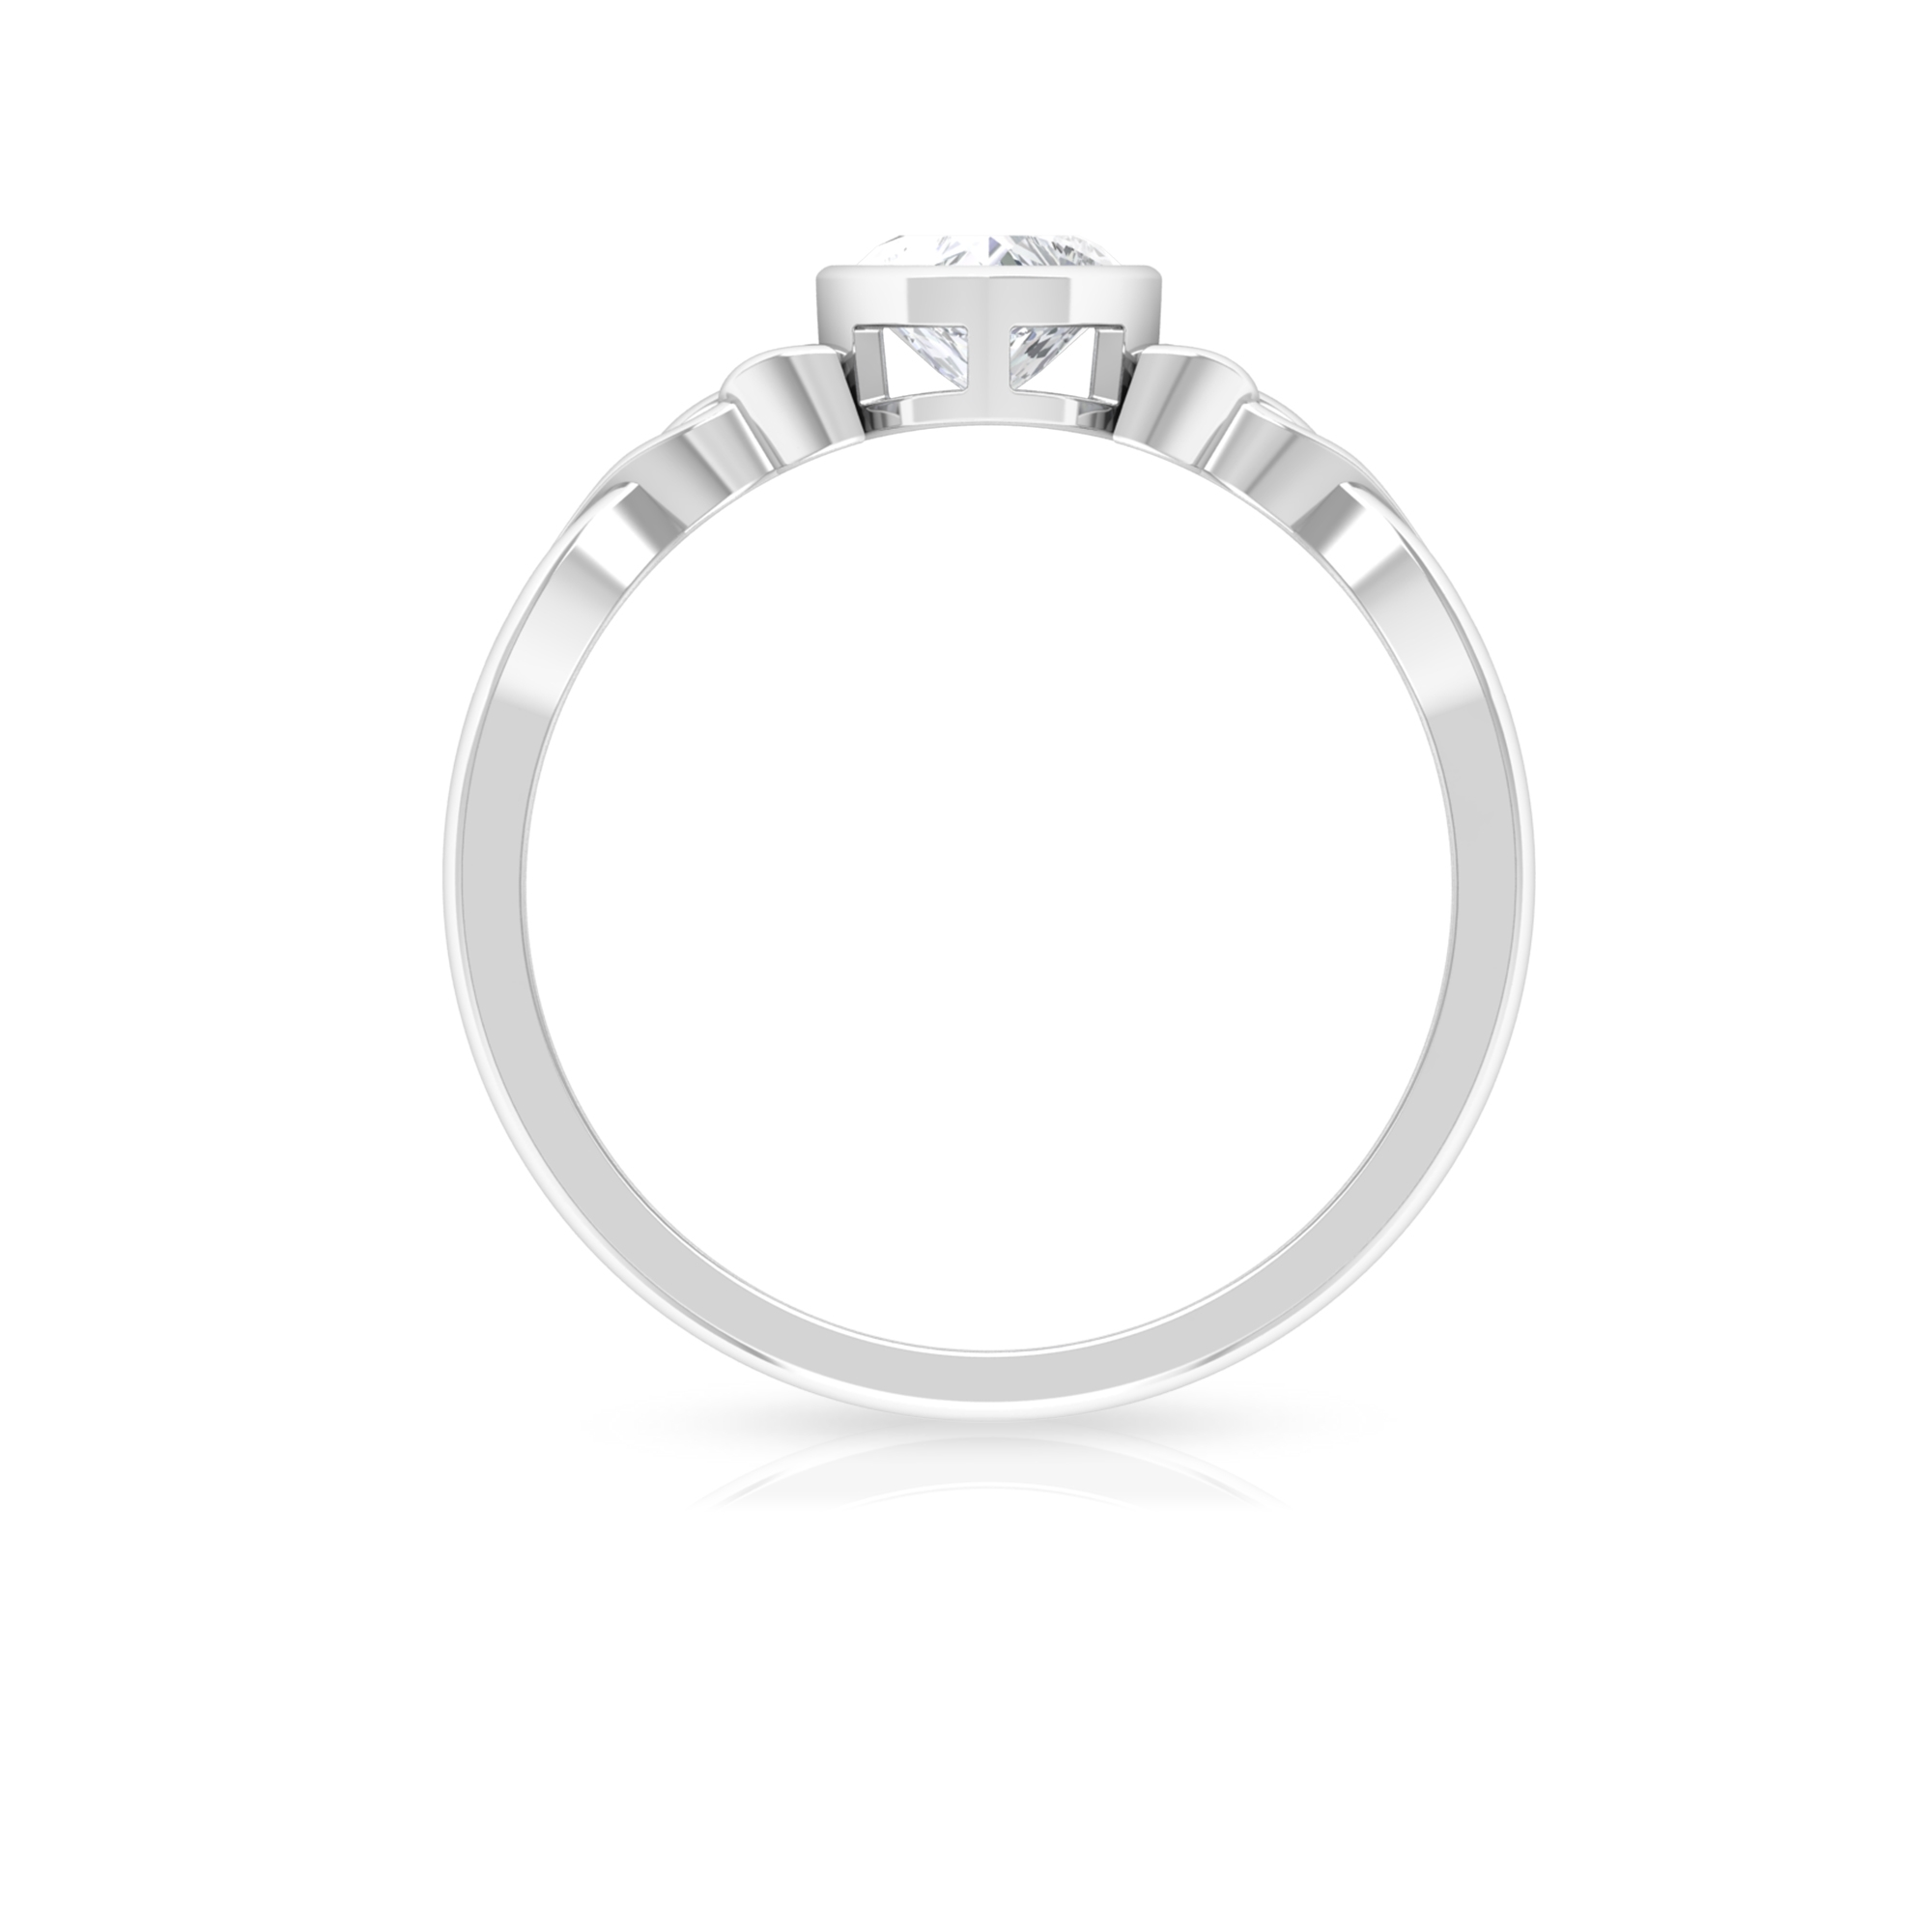 5.40 MM Heart Shape Diamond Solitaire Ring in Bezel Setting with Celtic Band